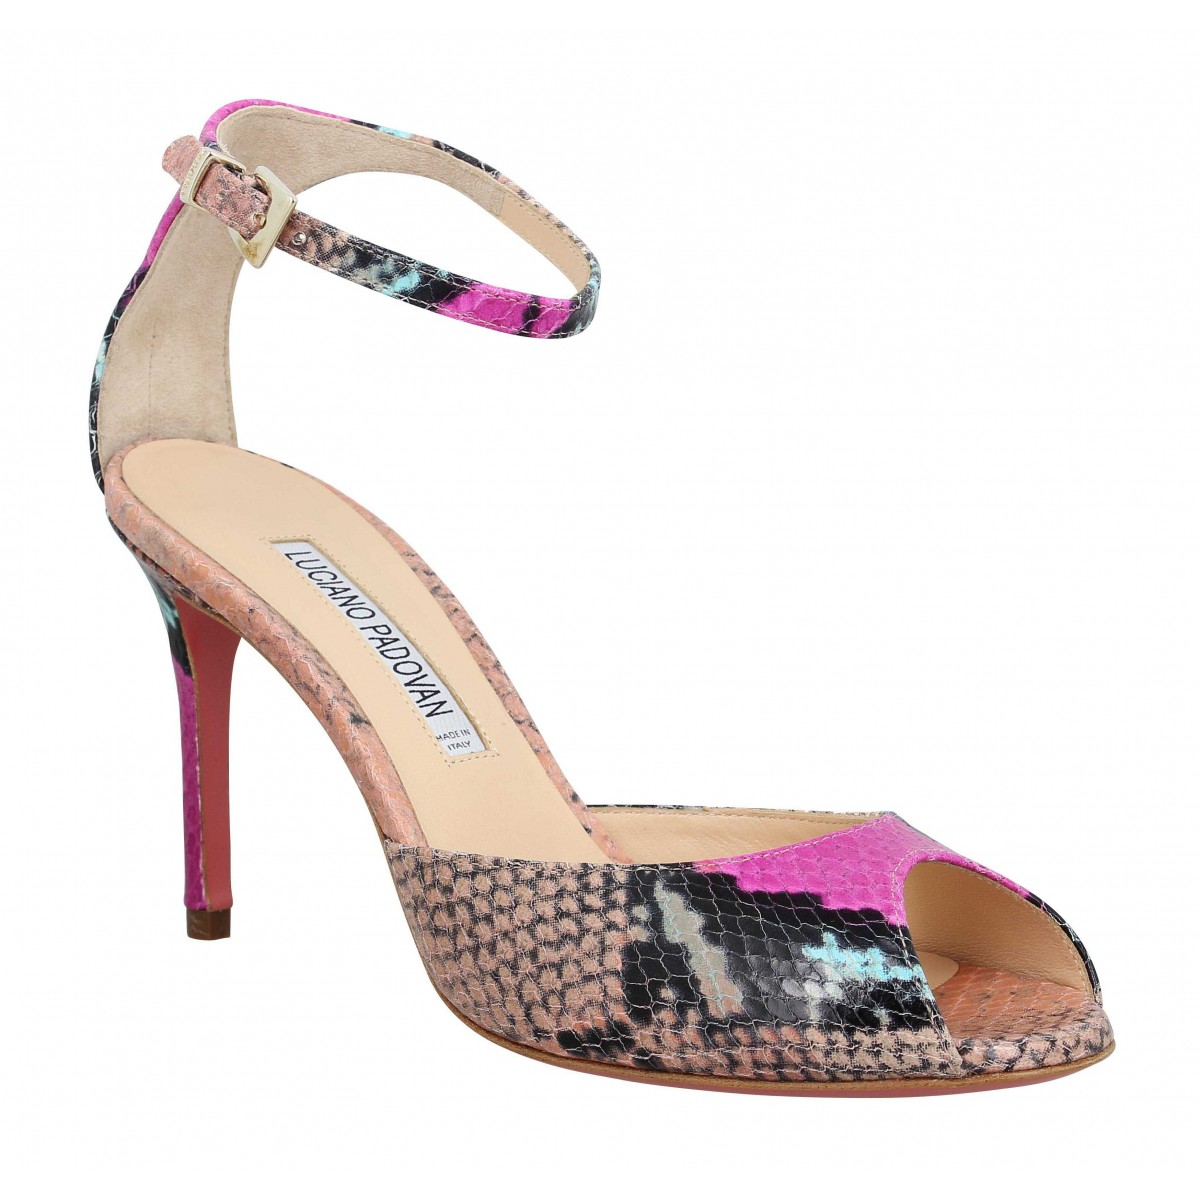 Sandales talons LUCIANO PADOVAN 306 python Femme Multi